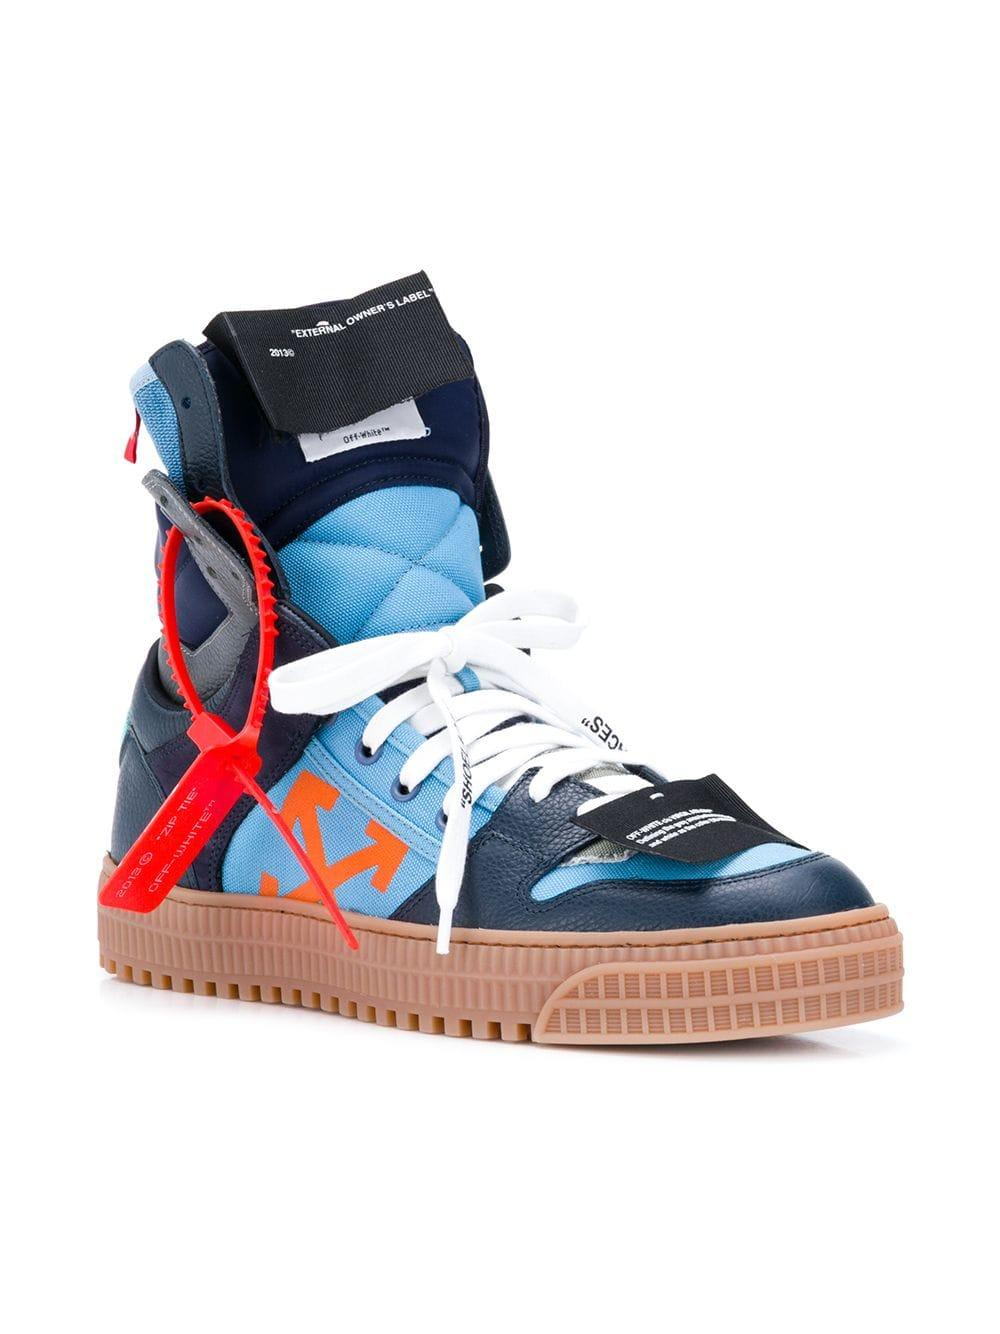 a84cf7c1cbb0ce Off-White c/o Virgil Abloh Men's Off Court Suede/leather High-top Sneakers  in Blue for Men - Save 23.57142857142857% - Lyst